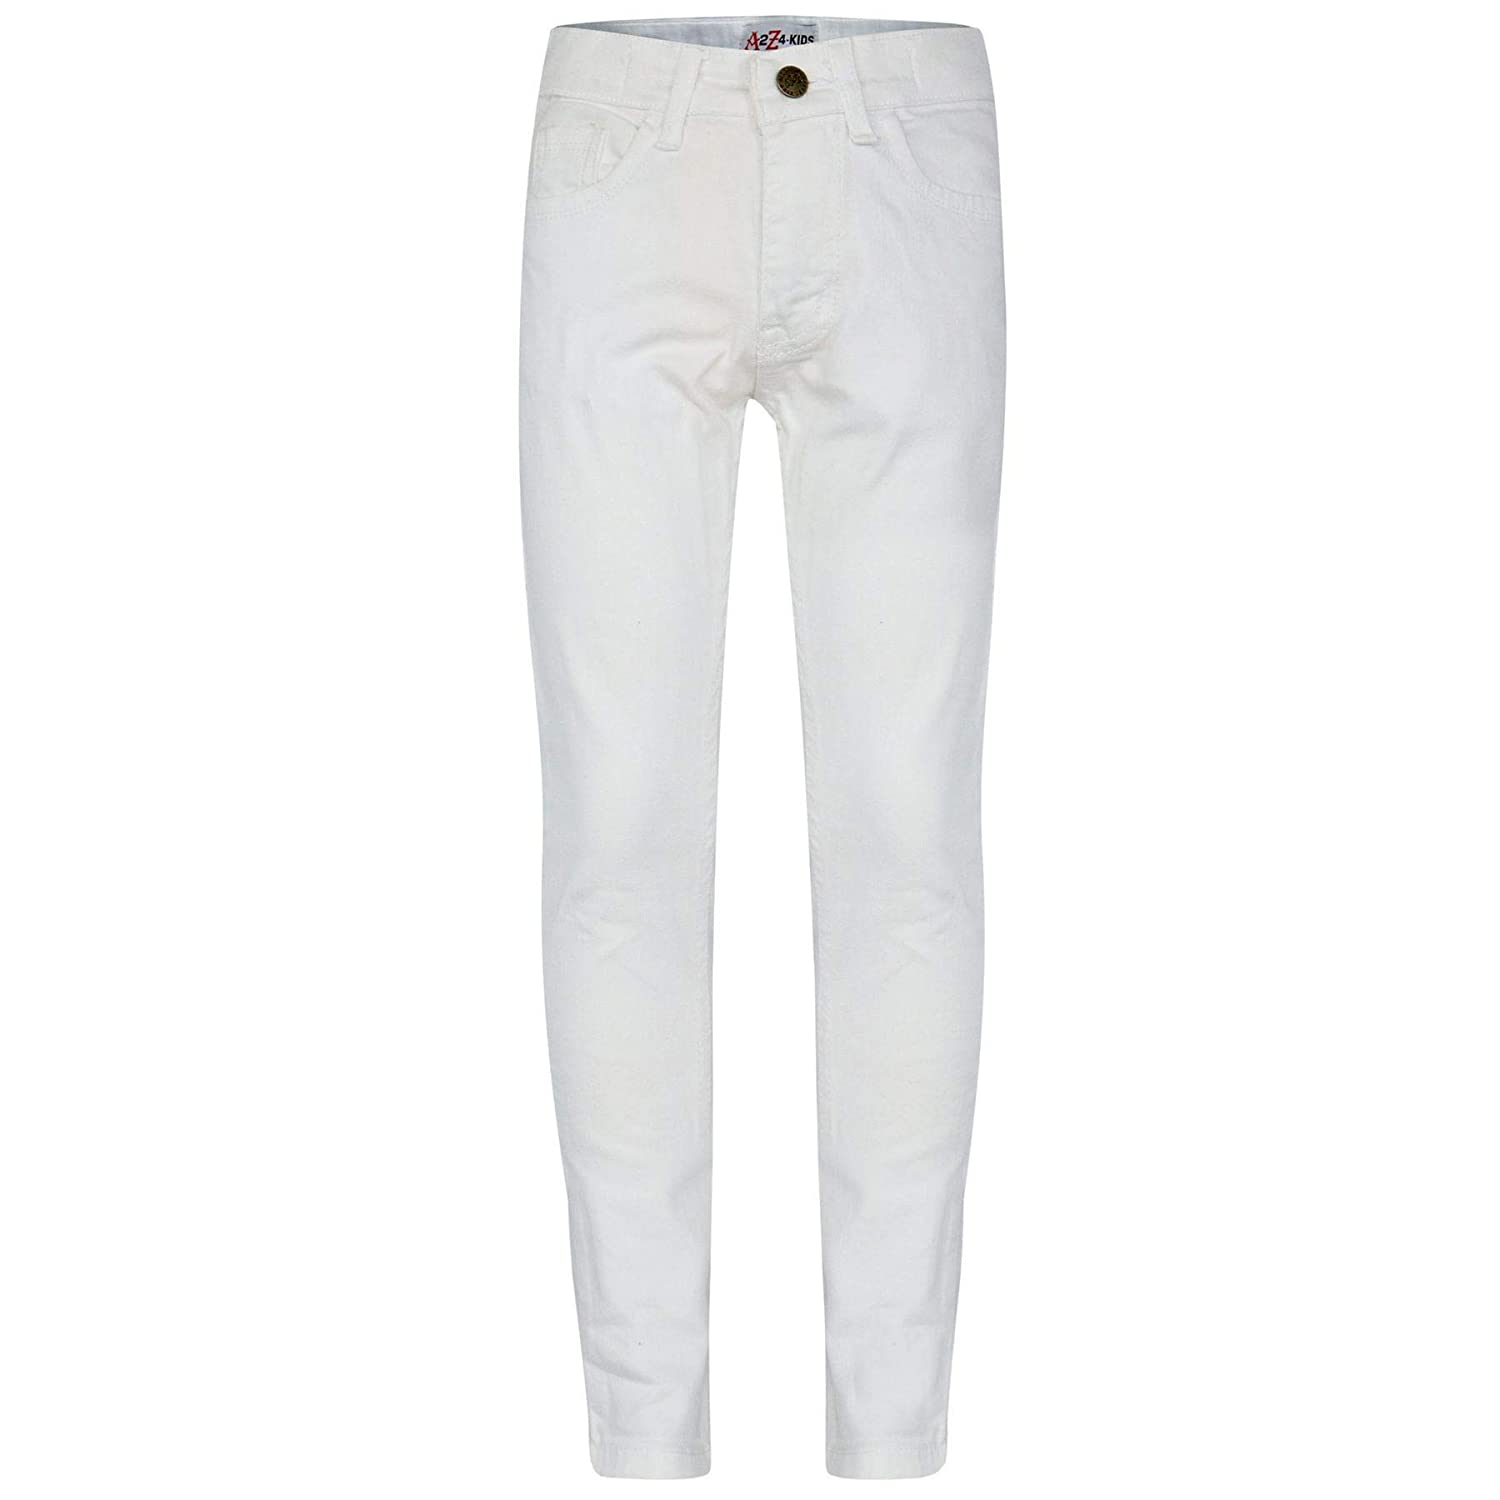 A2Z 4 Kids Kids Girls Skinny Jeans Designer's White Denim Stretchy Pants Fashion Fit Trousers New Age 5 6 7 8 9 10 11 12 13 Years